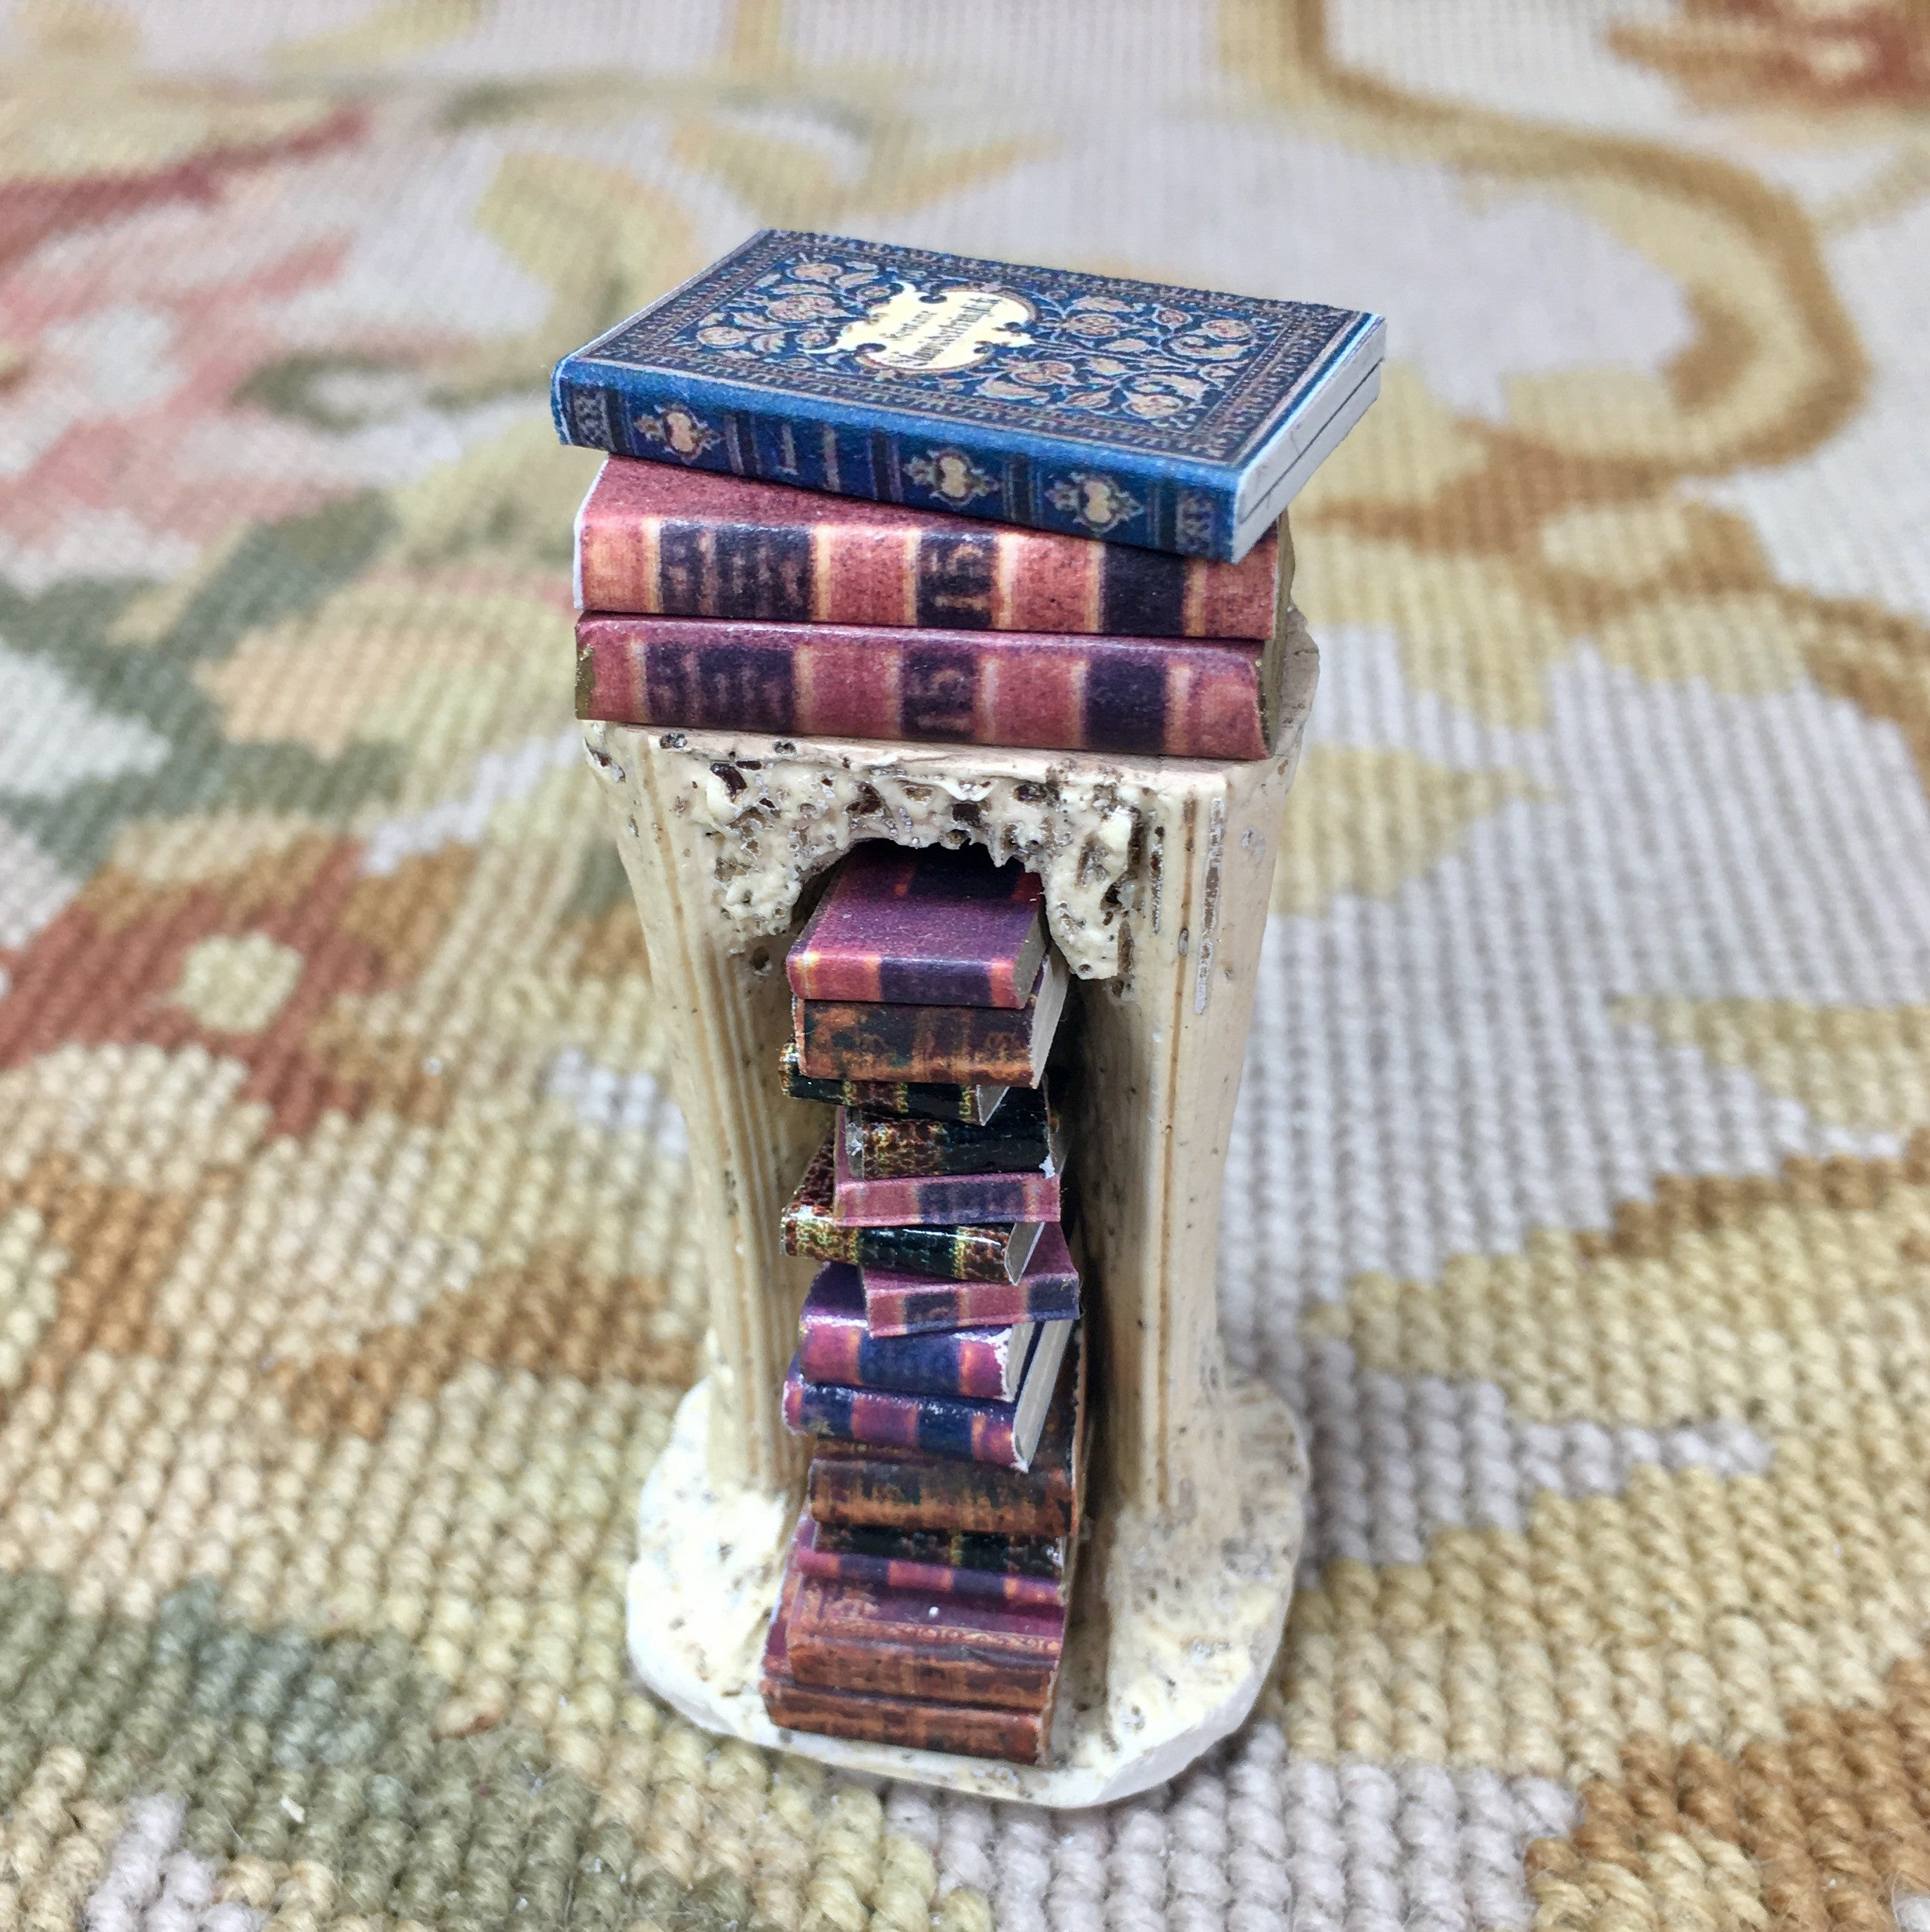 Table Book Stand Pedestal With Books 1:12 Dollhouse Miniature